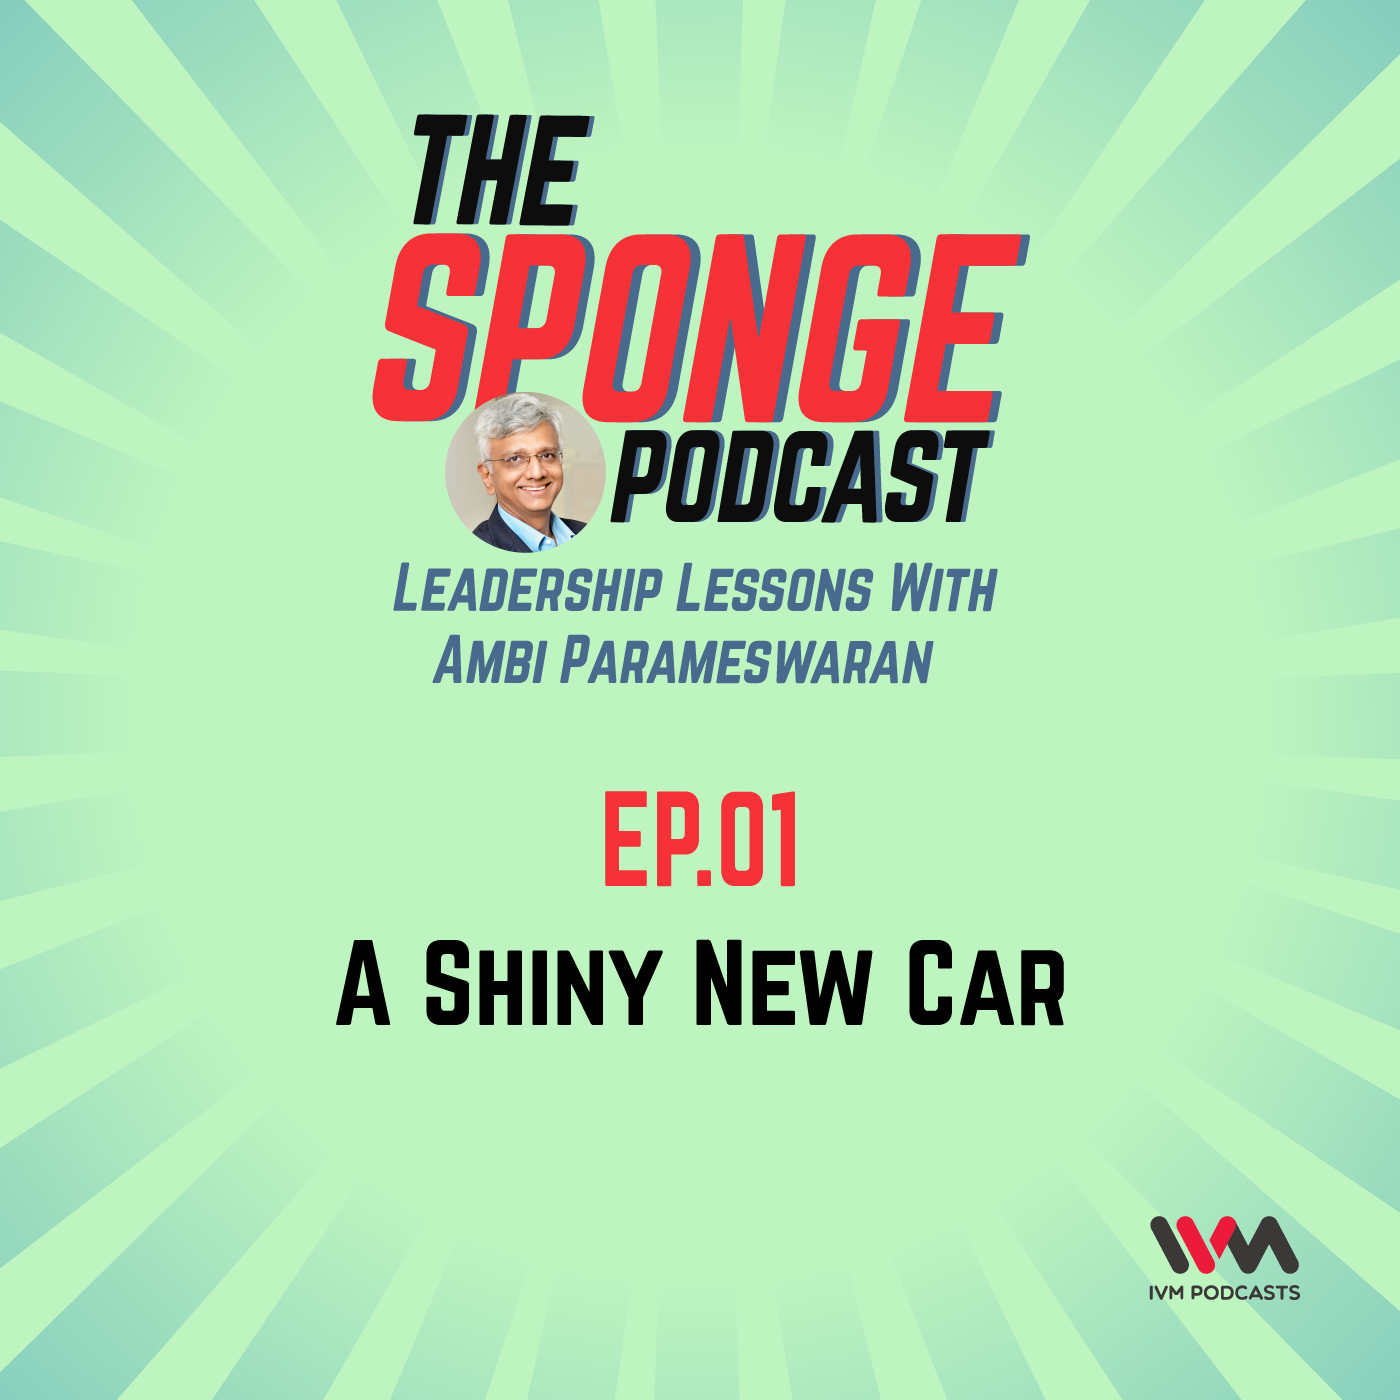 Ep. 01: A Shiny New Car